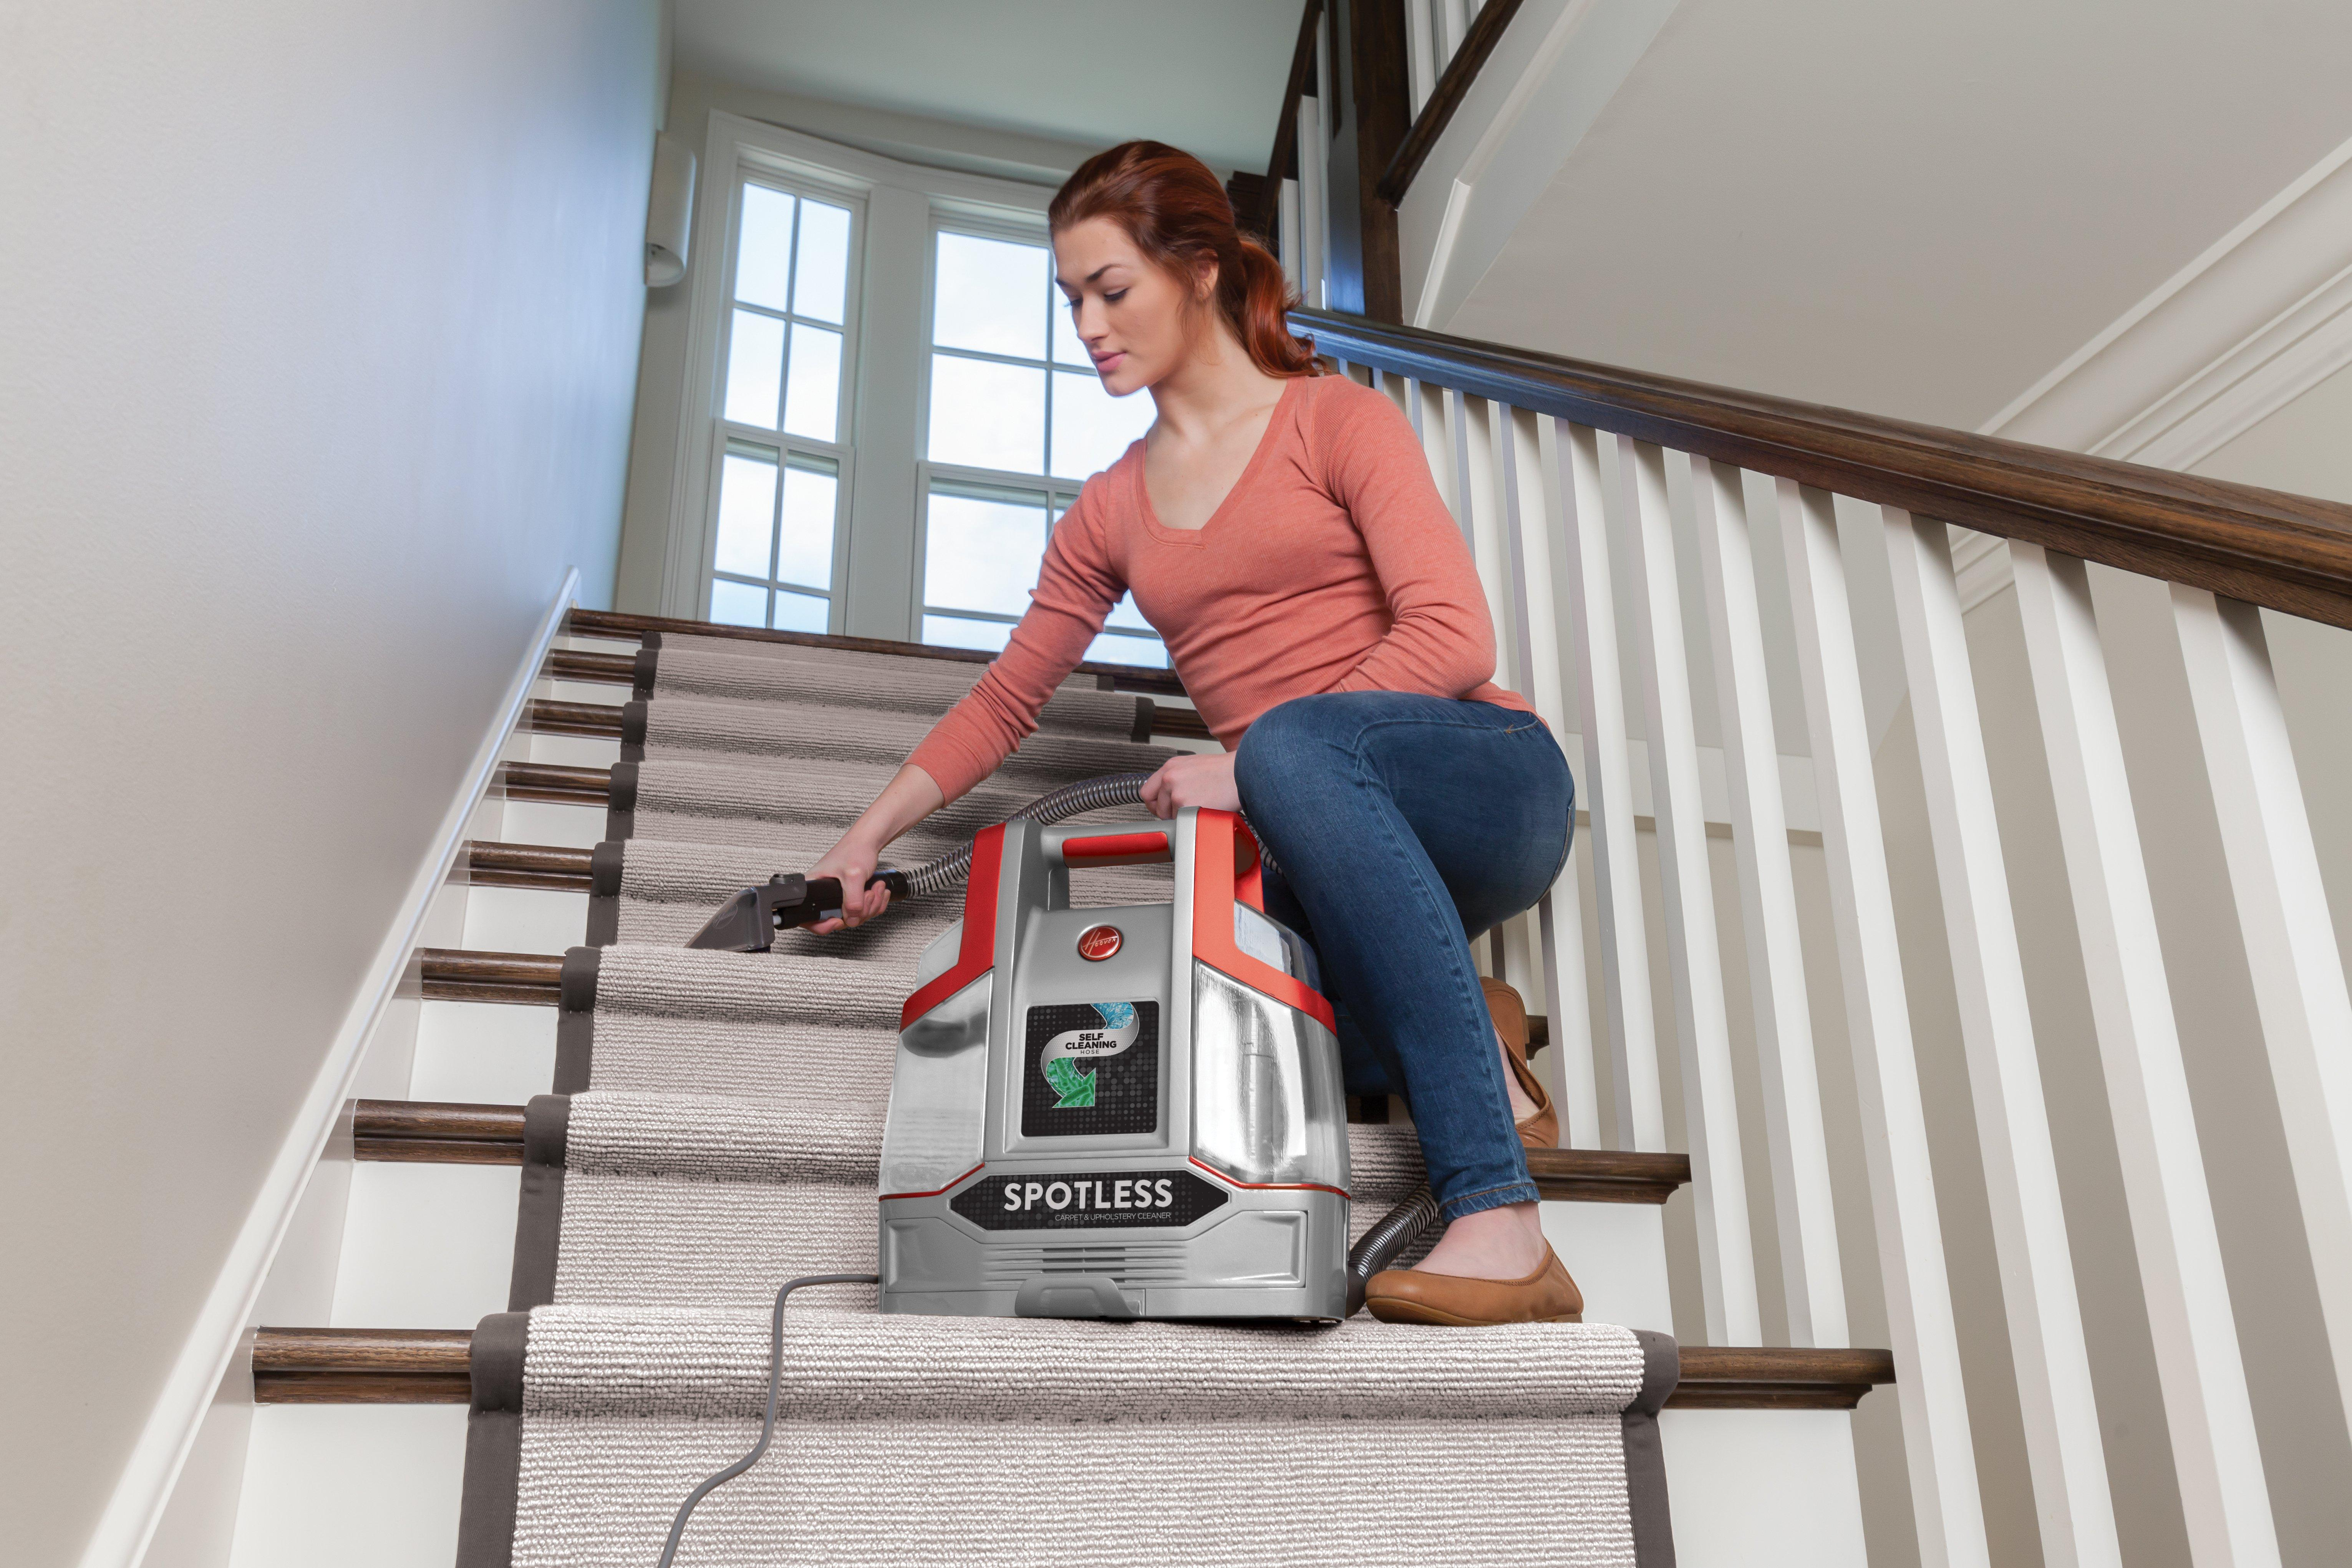 Hoover-Spotless-Portable-Carpet-amp-Upholstery-Cleaner-Washer-FH11300 thumbnail 4